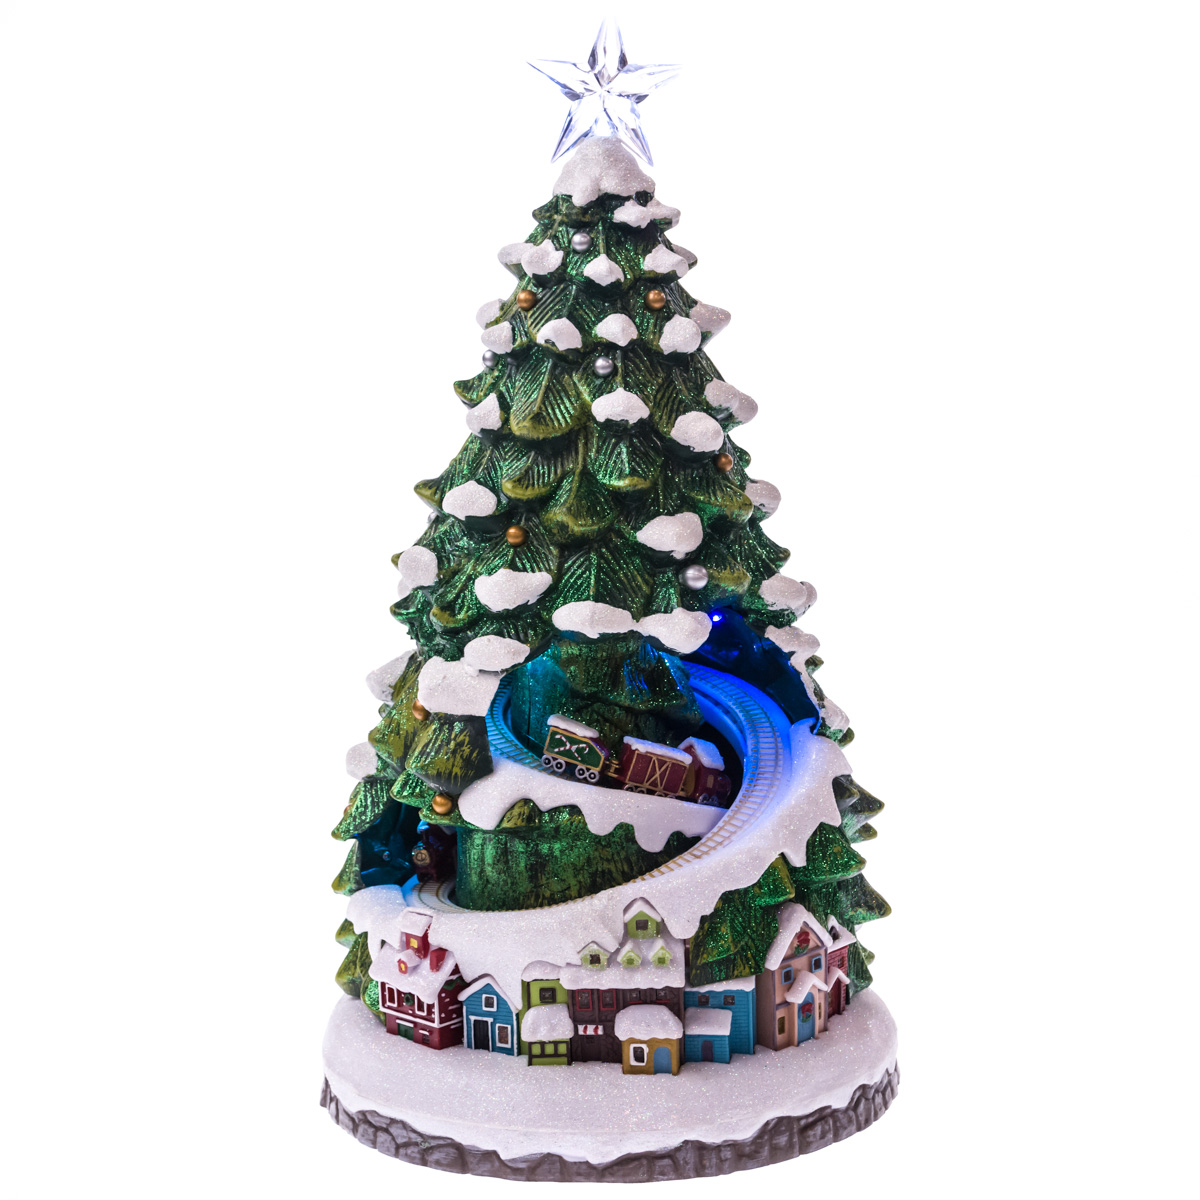 led village christmas tree scene collections traditional christmas cracker barrel old country store - Cracker Barrel Store Christmas Decorations